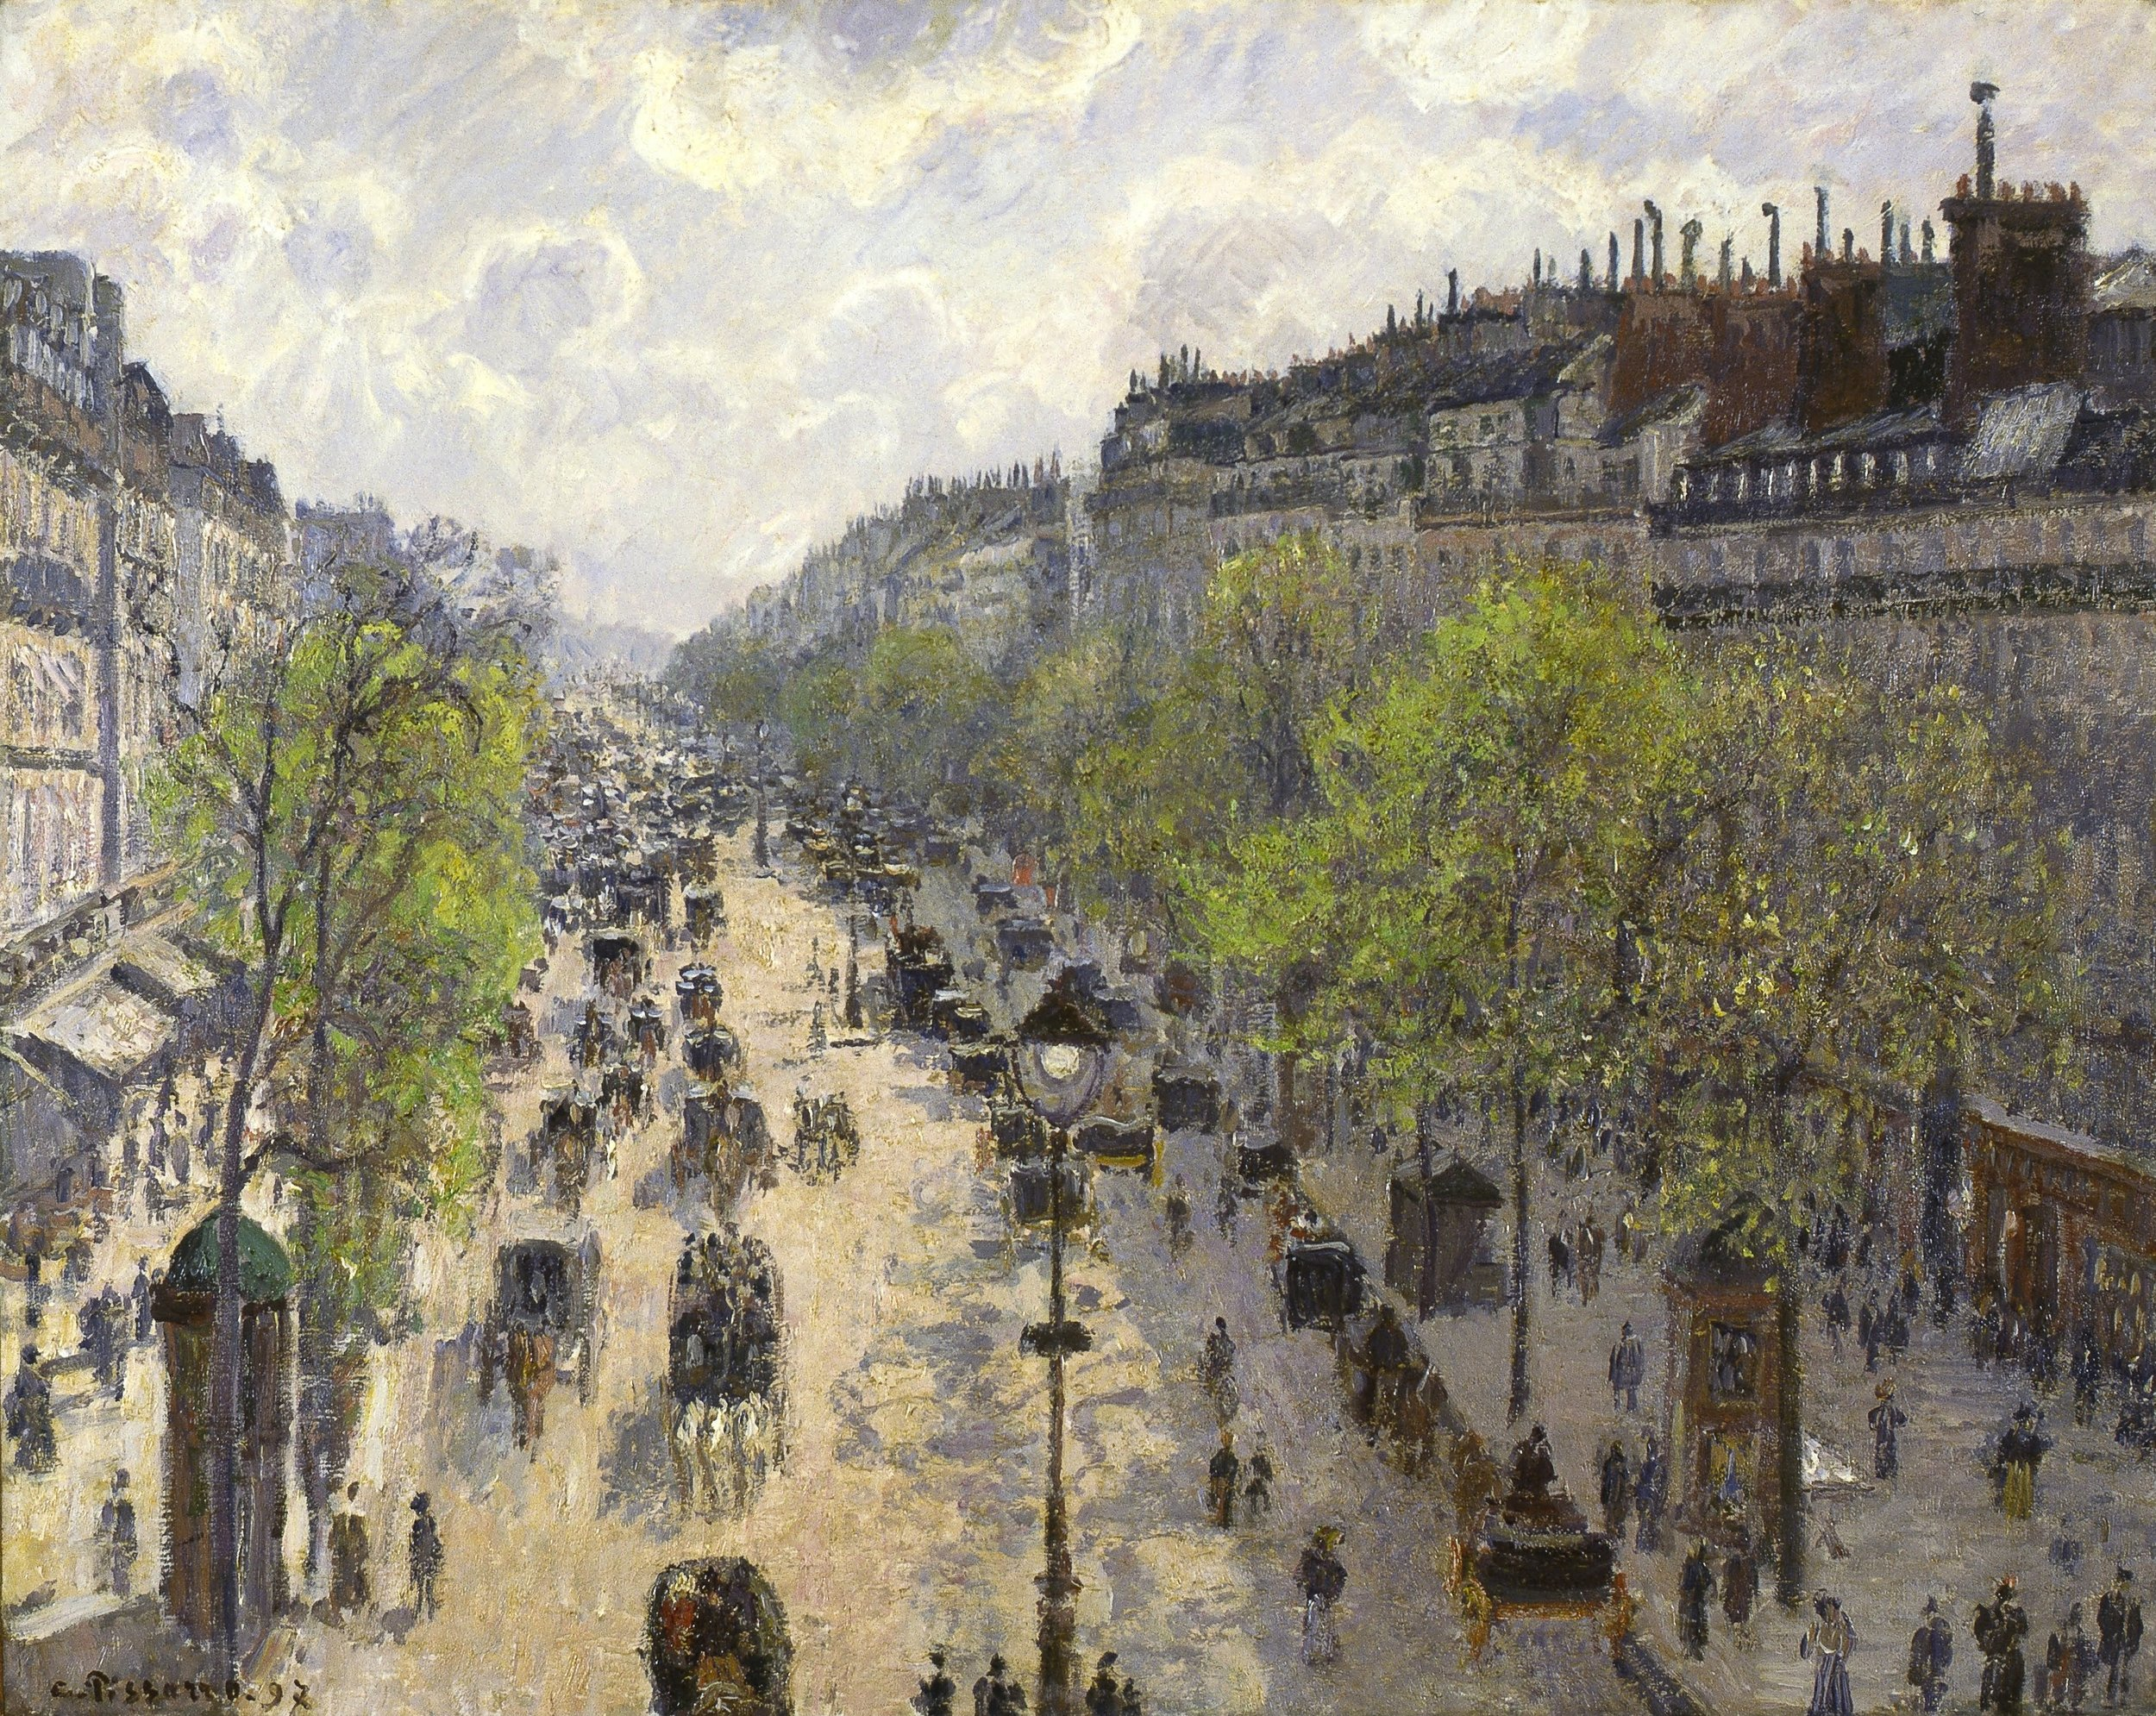 The architect of Paris, Haussmann, determined the heights of his buildings based on the width of the street. As shown in this painting by Pissarro, the shadows appear restrained to the bodies of the buildings and allow light to enter the windowed spaces parallel.